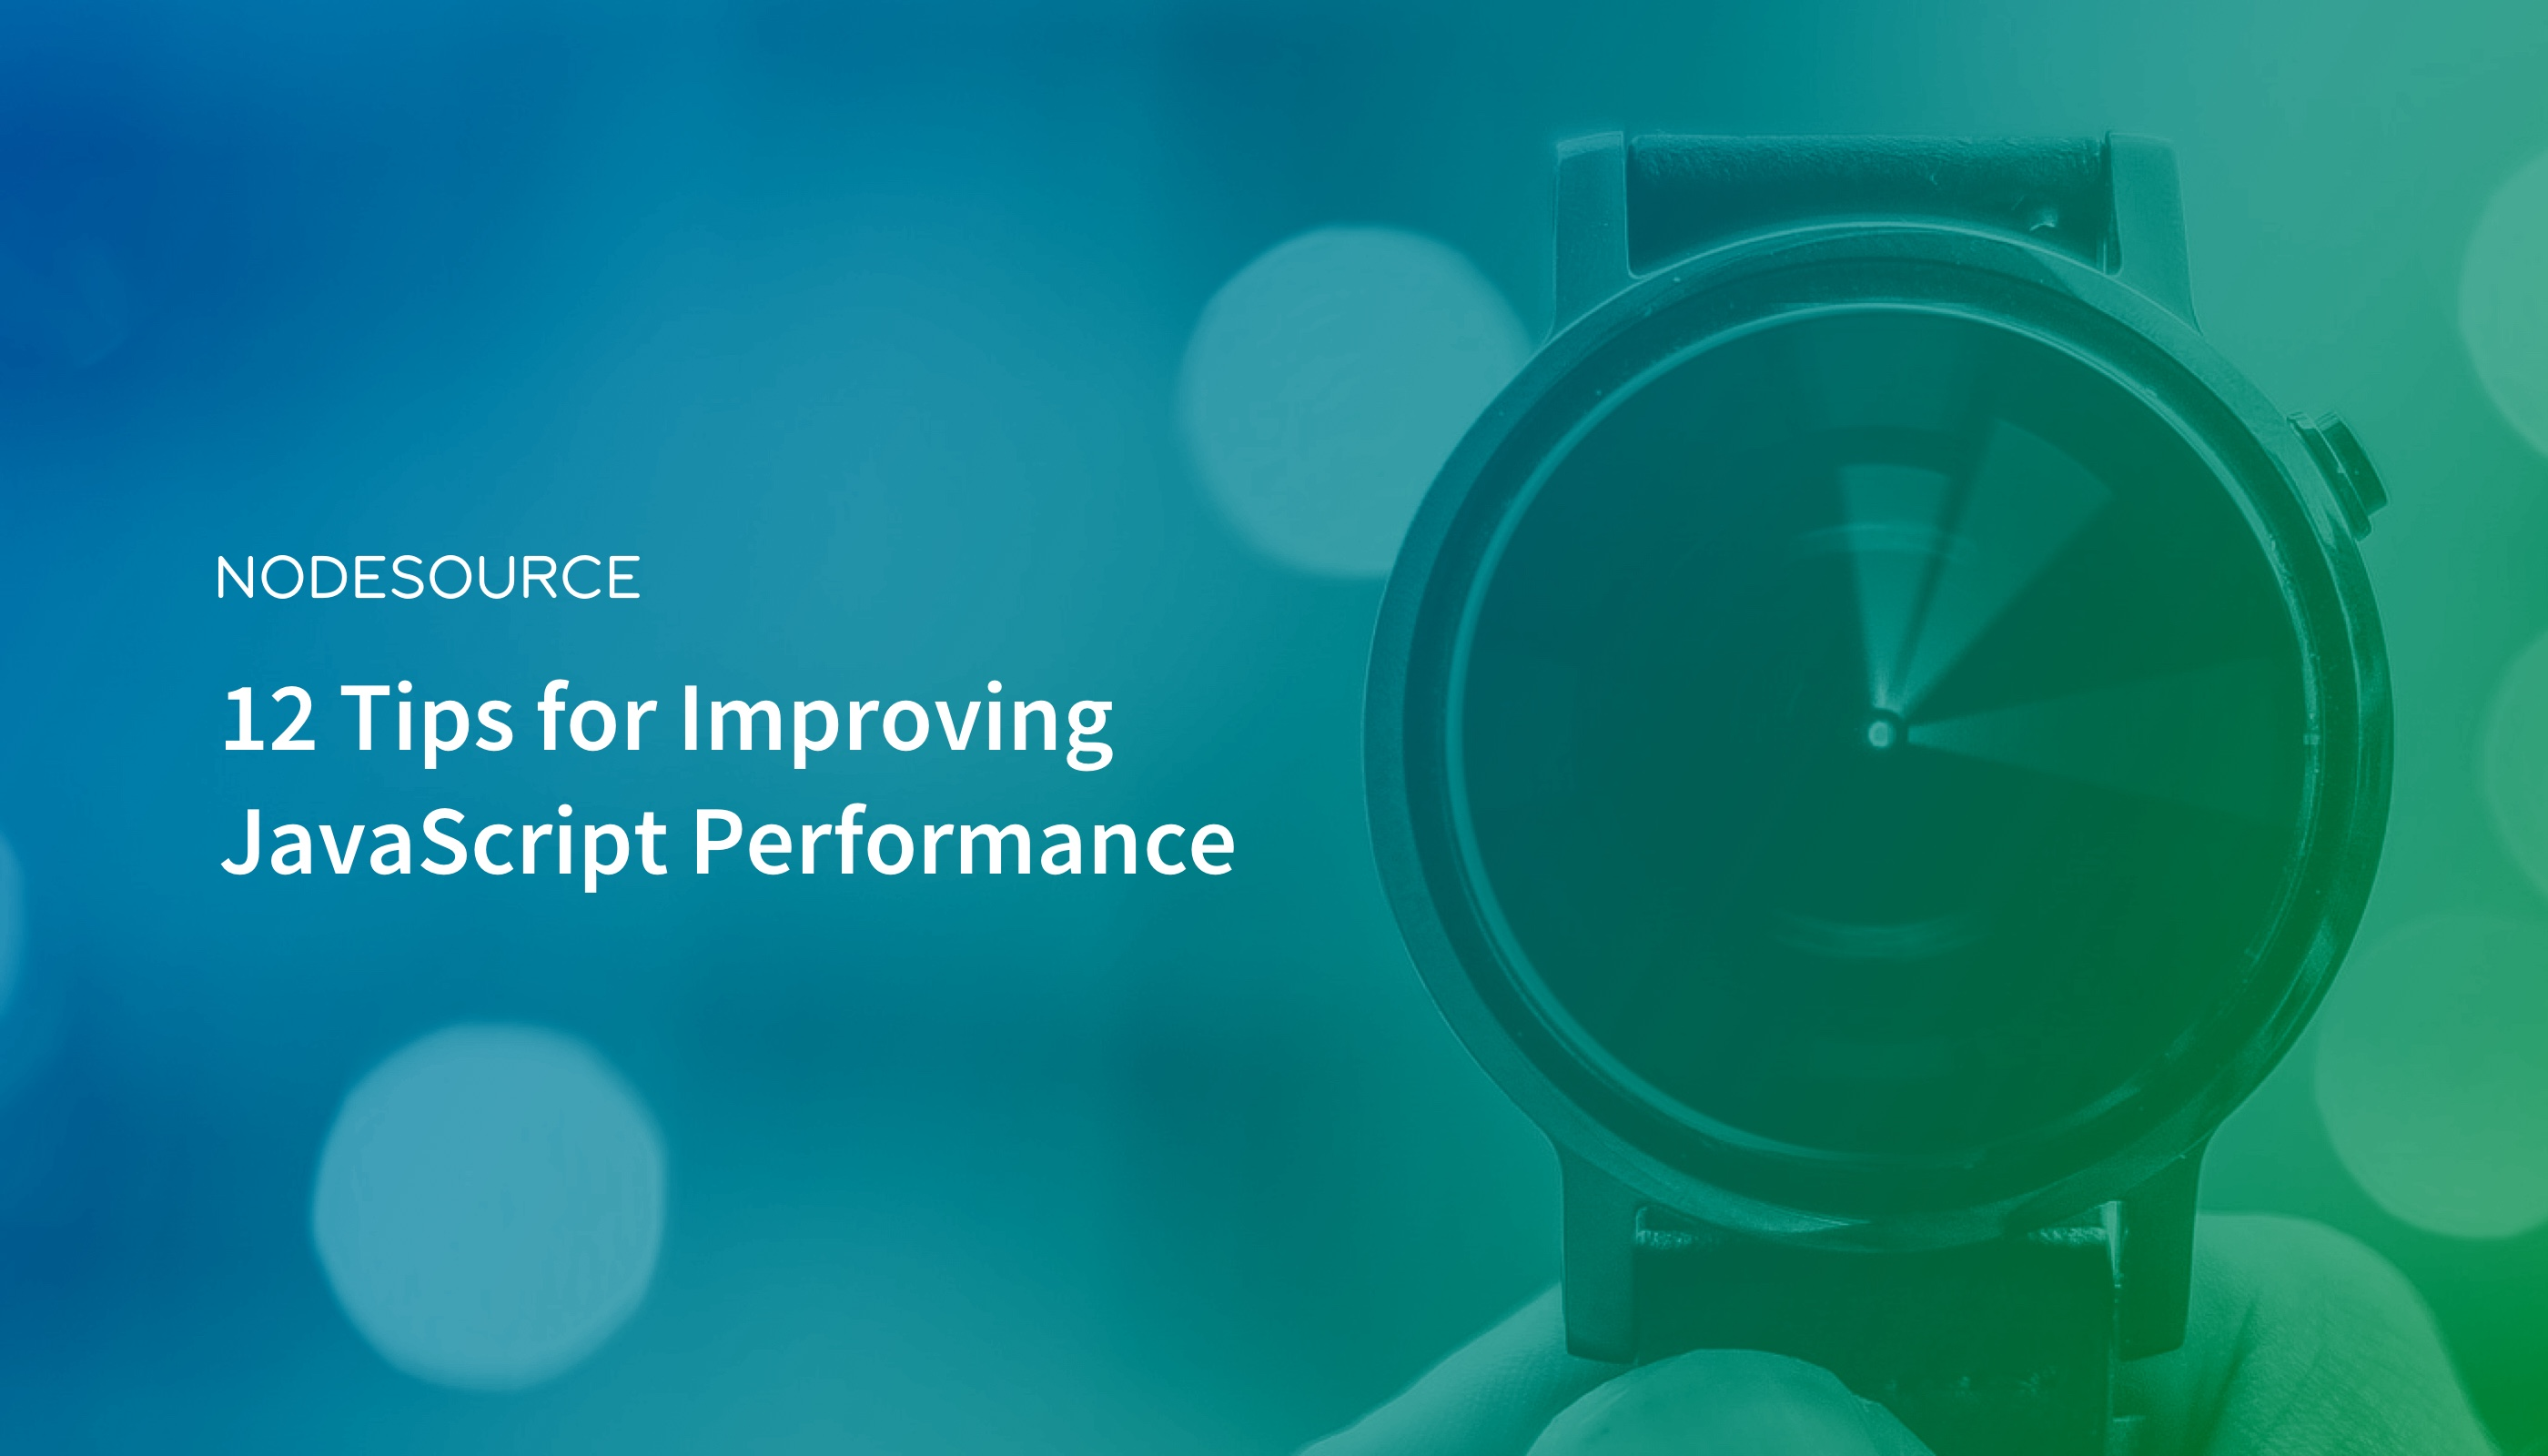 12 Tips for Improving JavaScript Performance